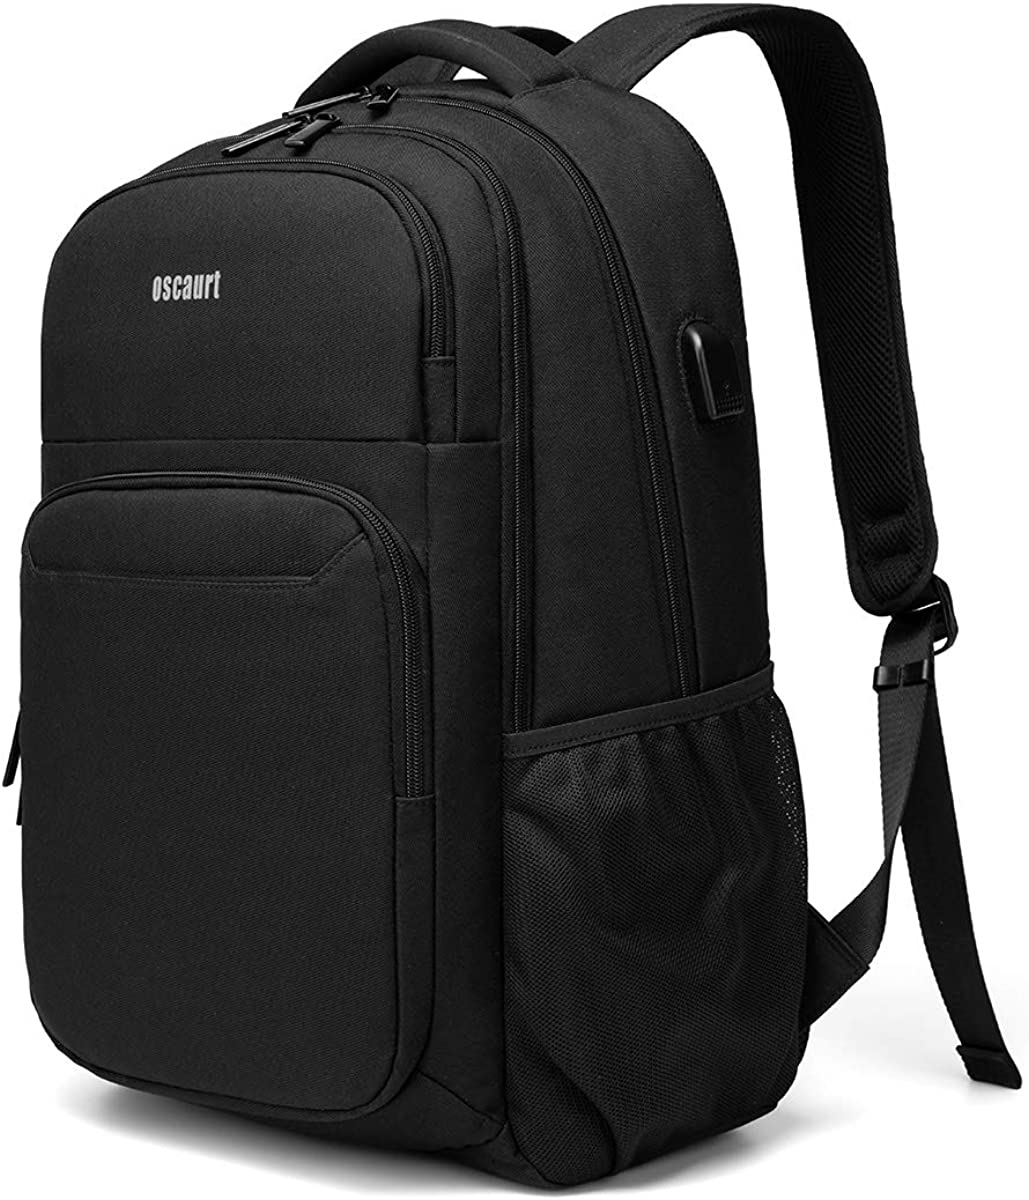 Travel Laptop Backpack, Business Slim Durable Laptops Bag Backpack with USB Charging Port Fits 15.6 Inch Laptop